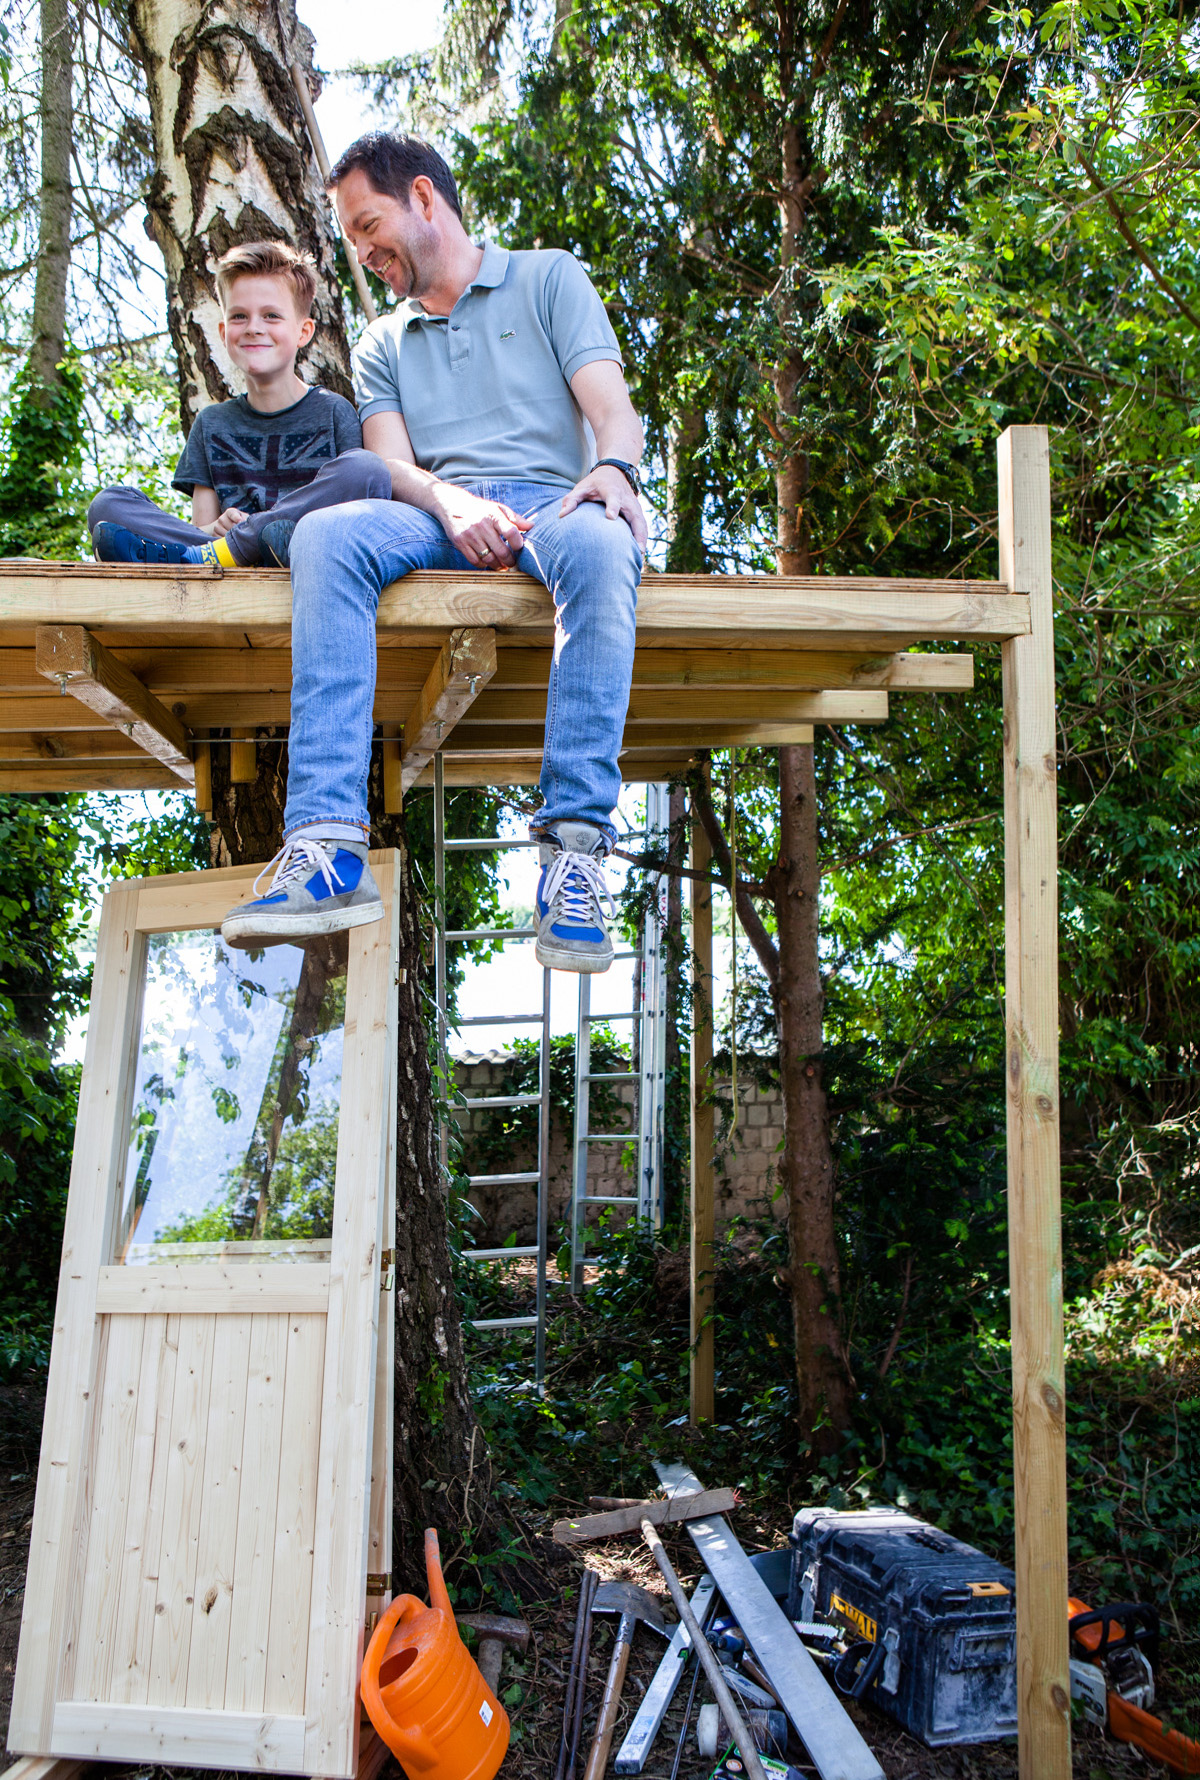 ©TomWoollard_OBI_Cologne-editorial-lifestyle-happy-father-son-sitting-diy-garden-treehouse.jpg